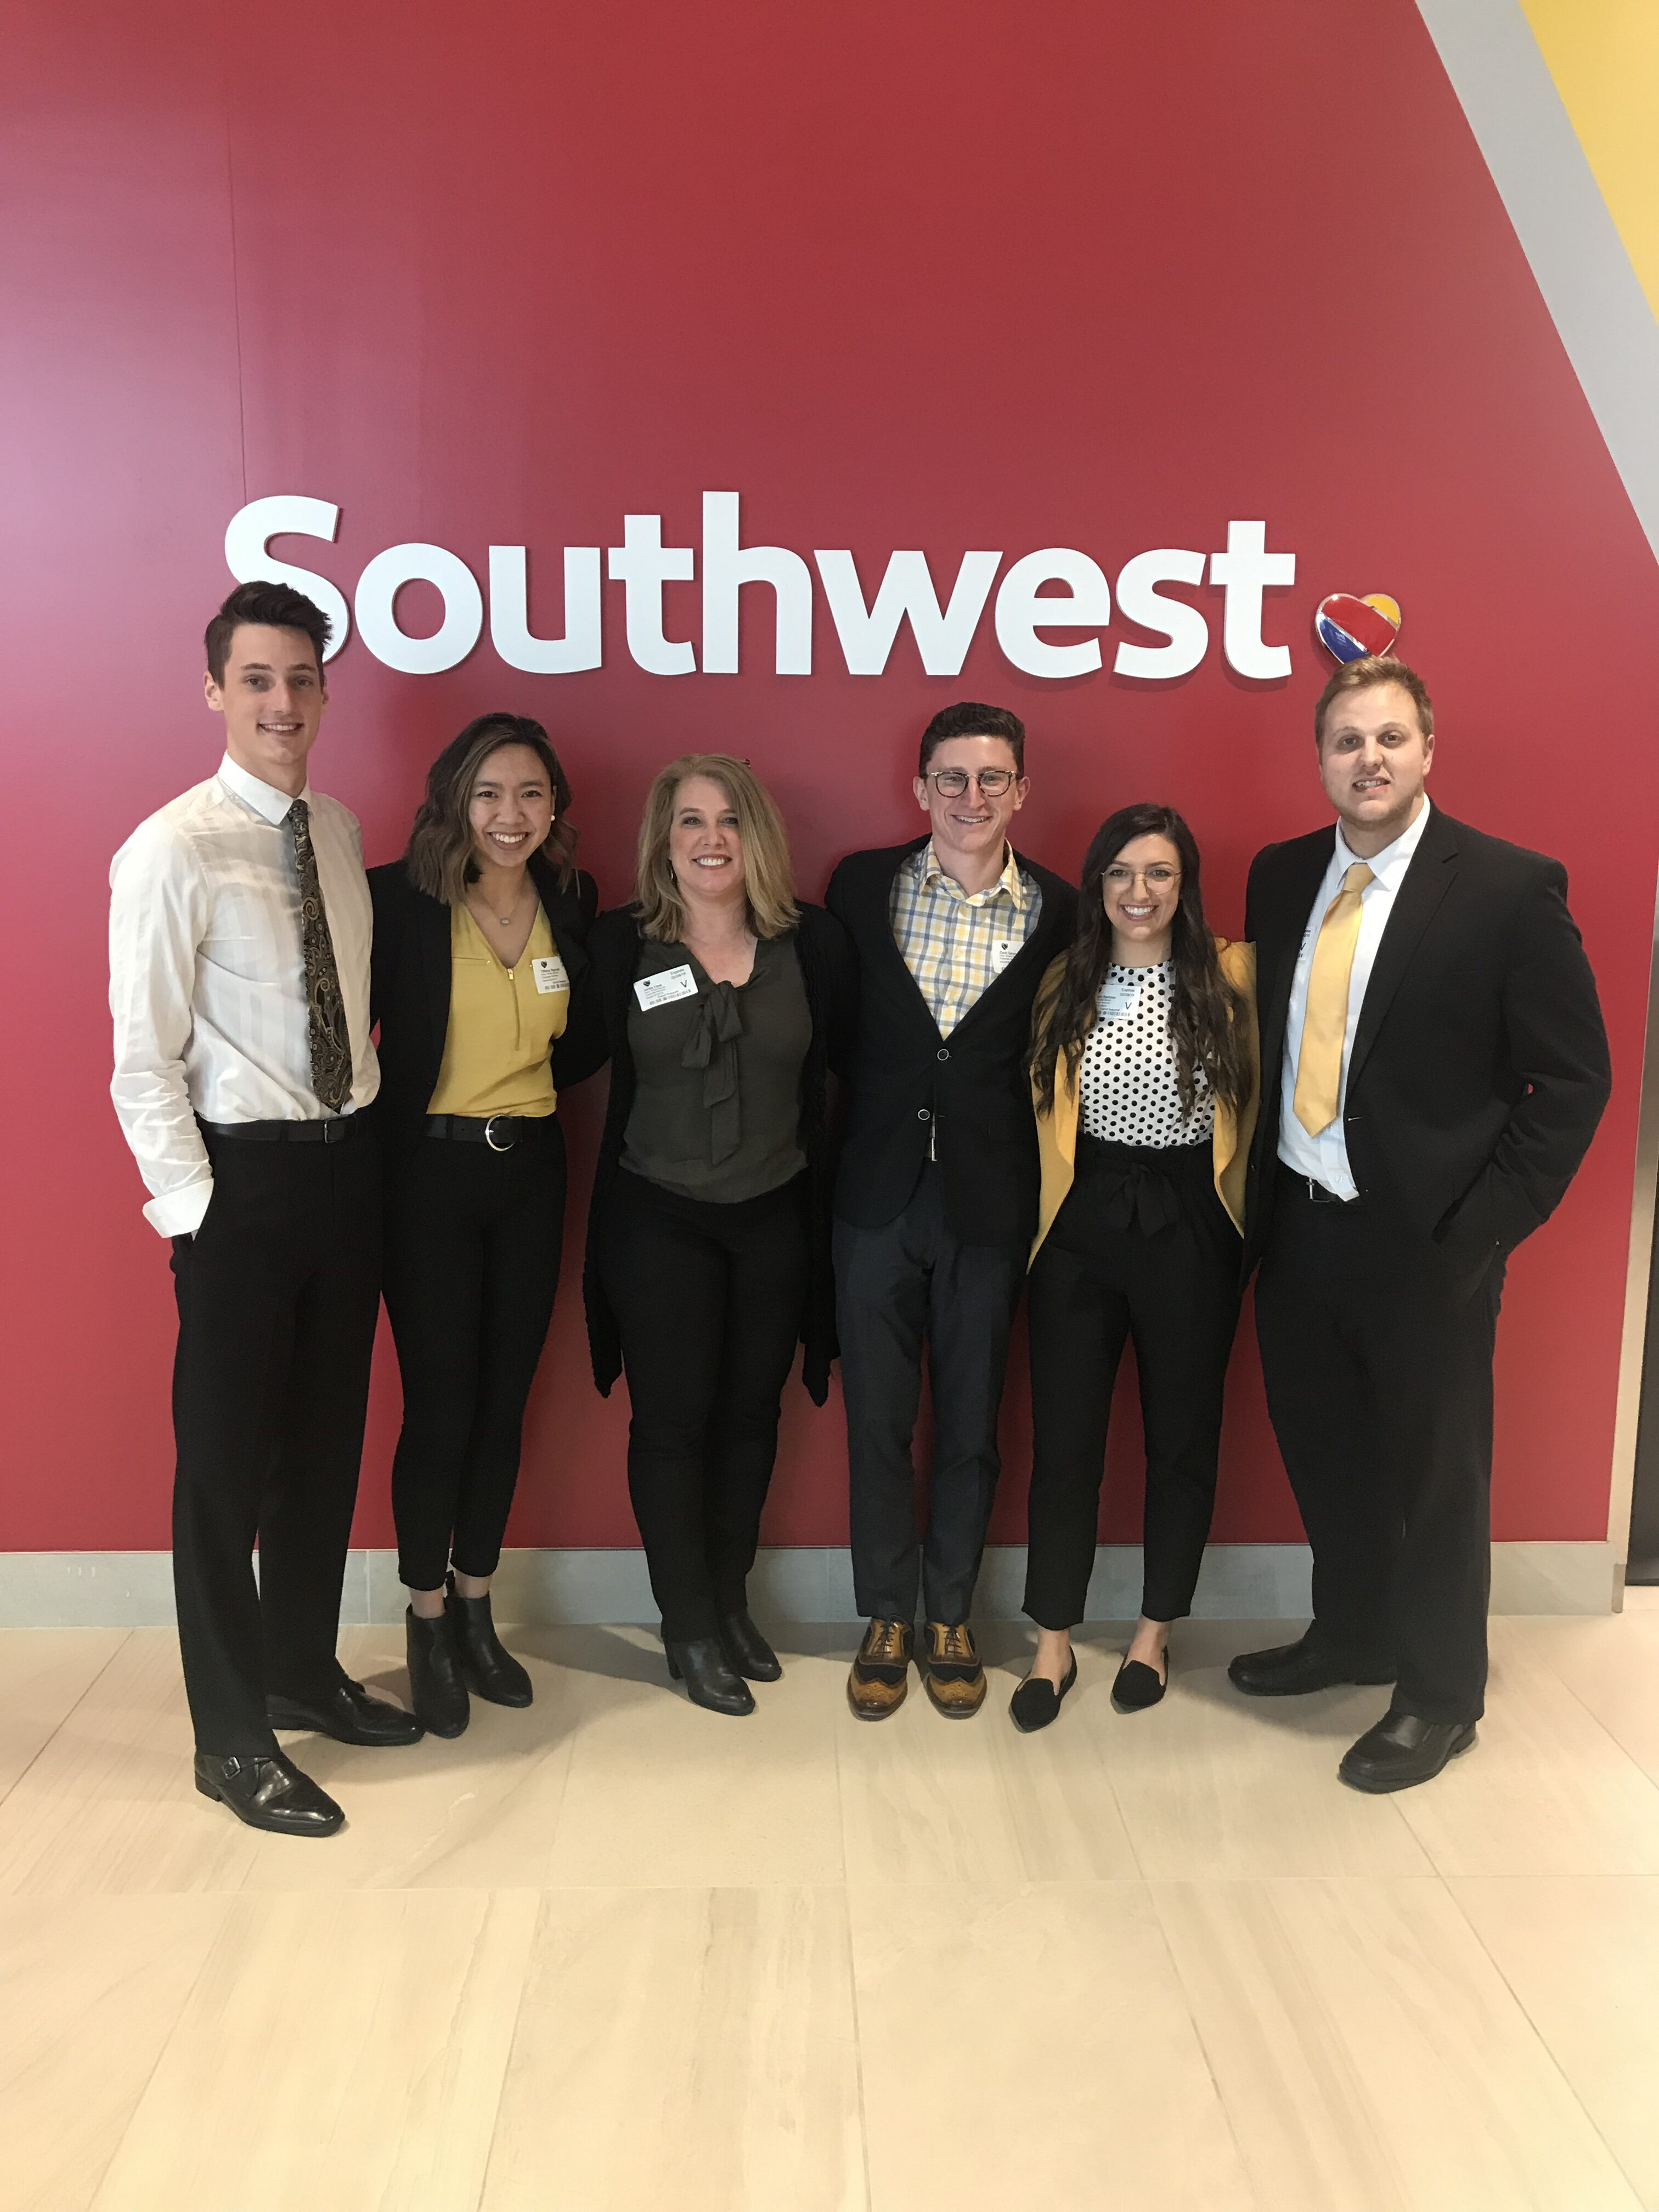 This is a picture of the five Mizzou students who presented the YAYA report to Southwest Airlines.